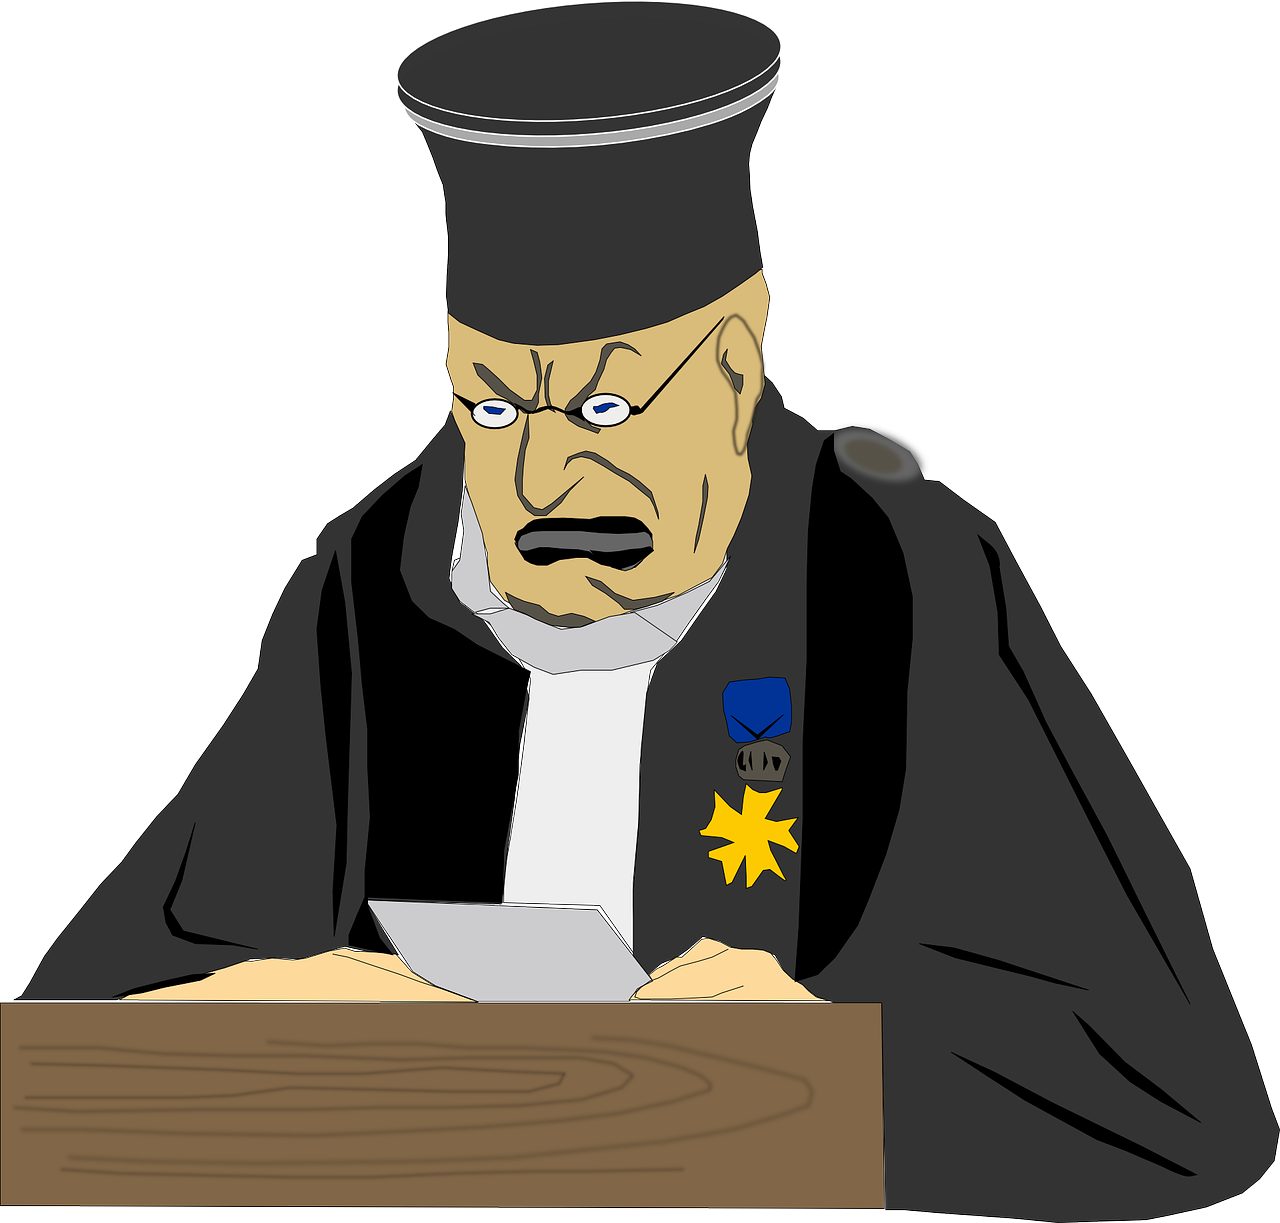 Supreme court judges support. Justice clipart law book